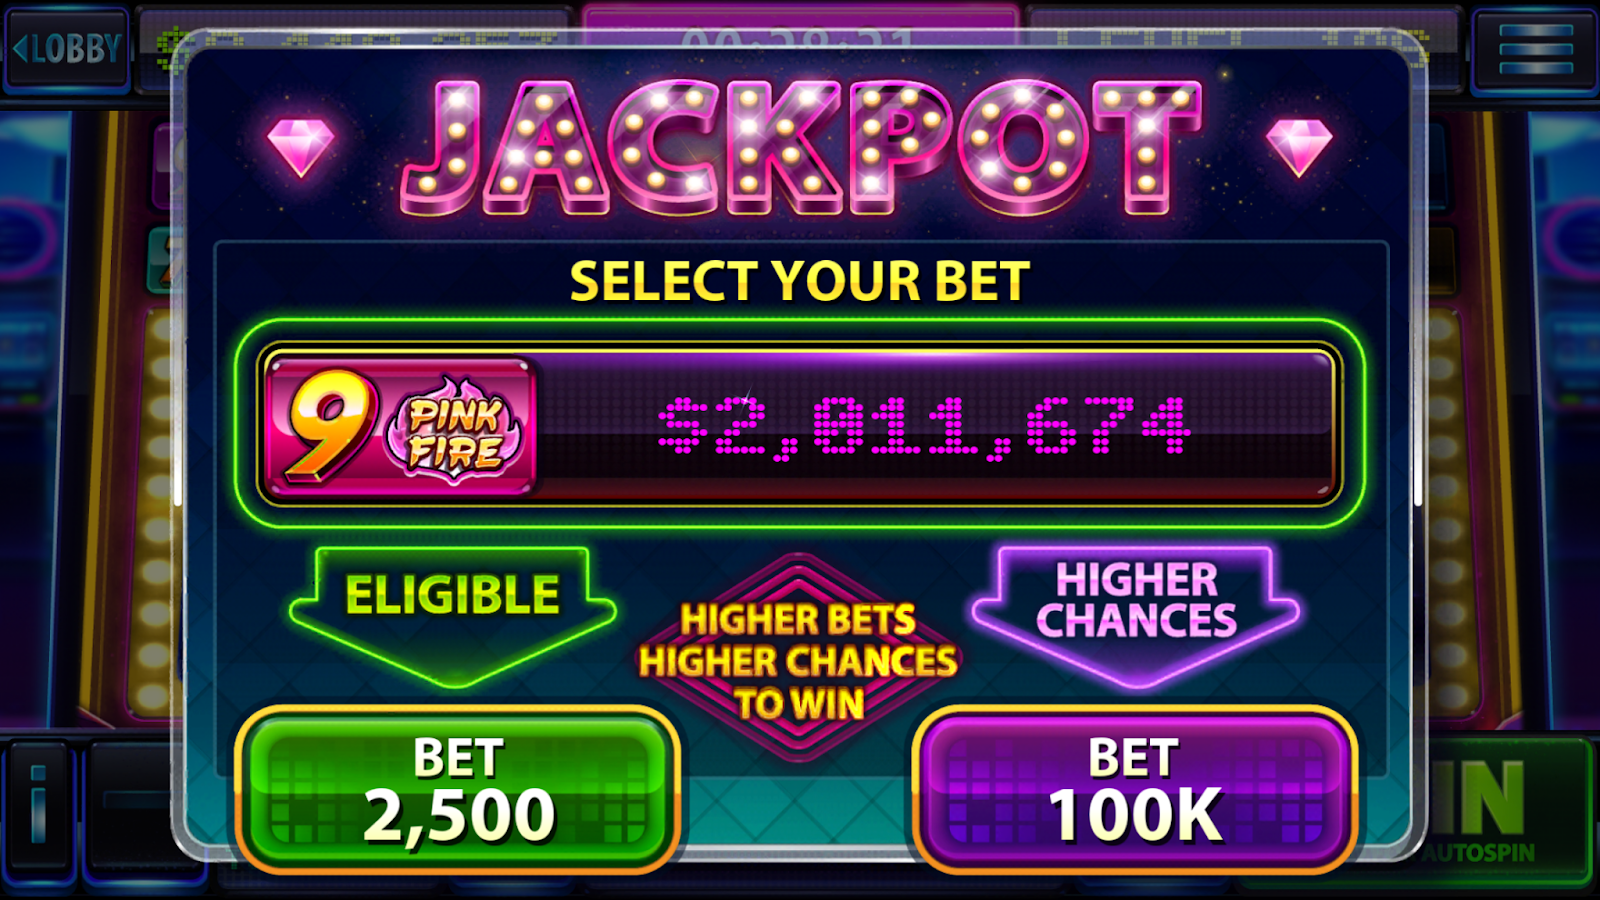 Jackpot casino slot freebies